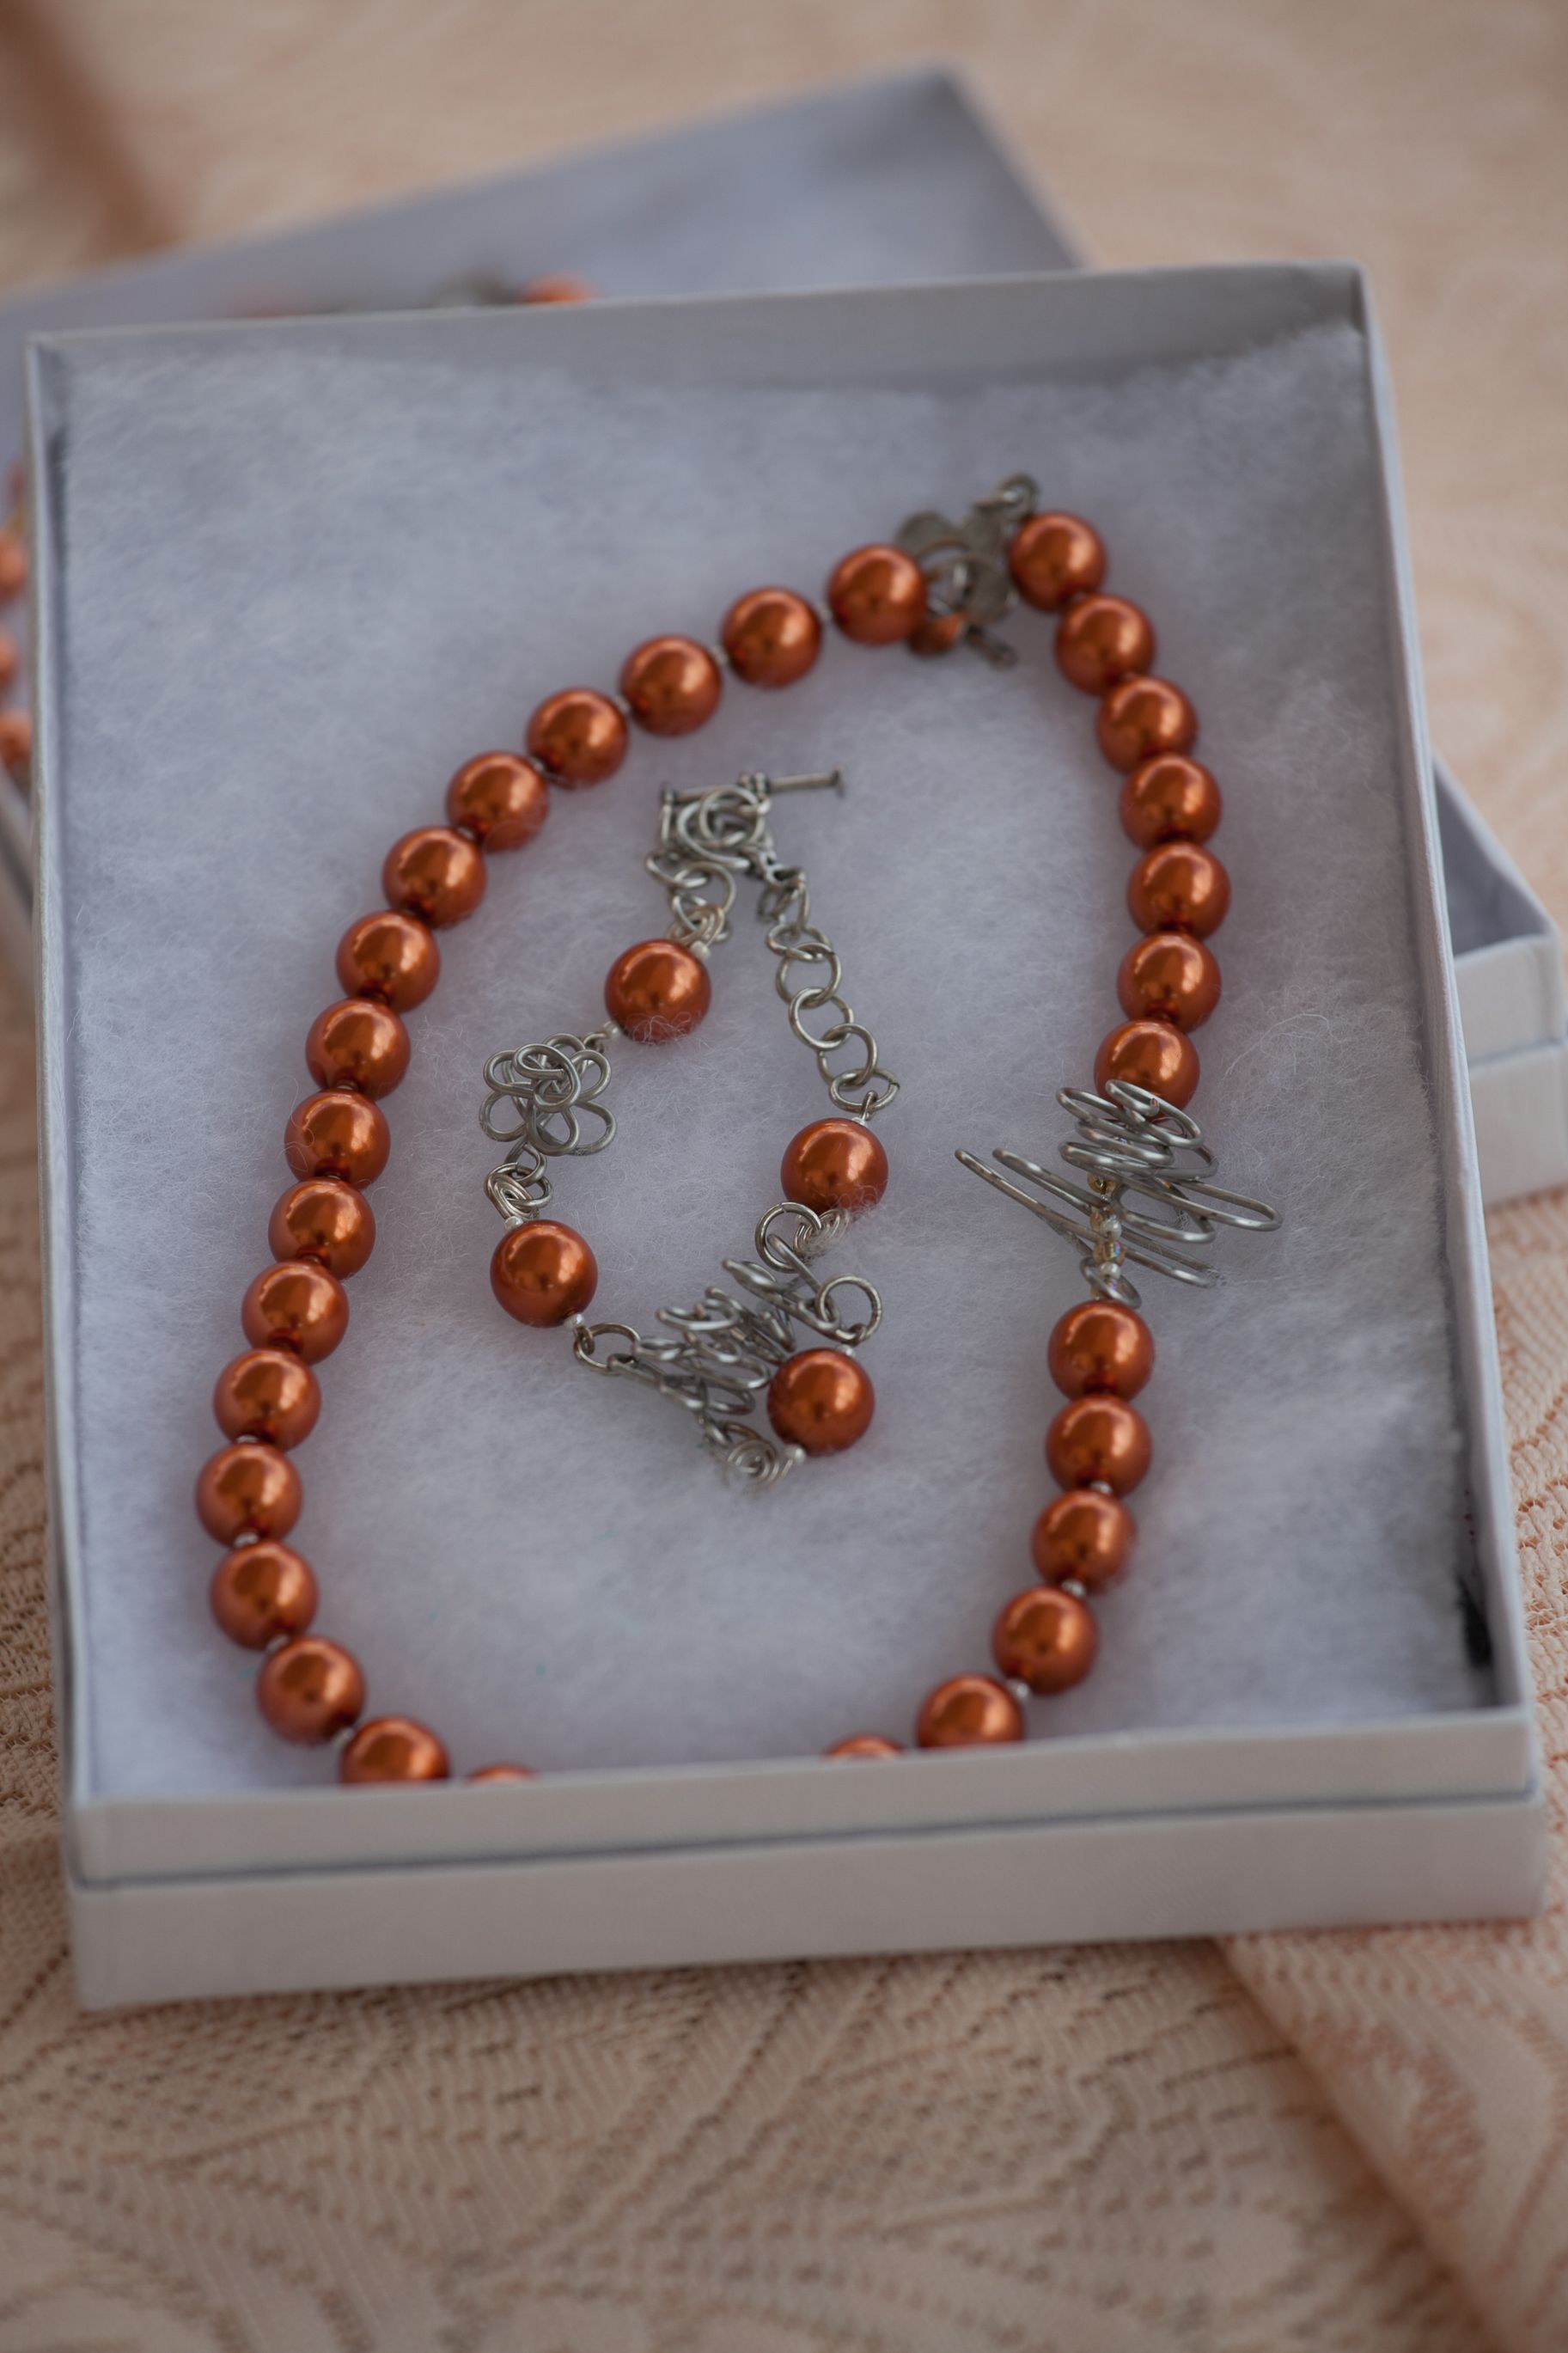 Cooper pearls with silver wire necklace and bracelet